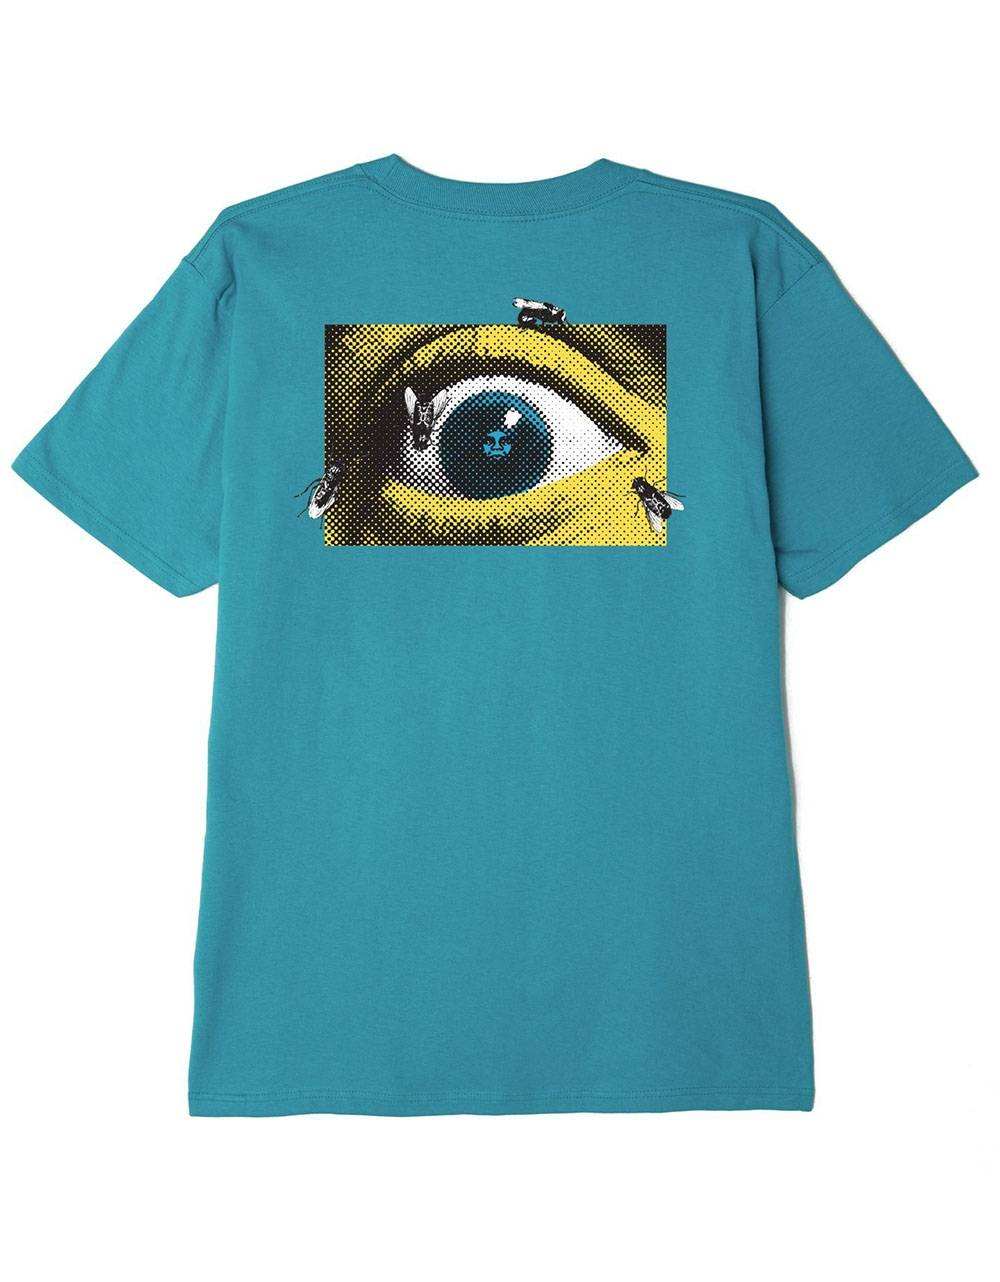 Obey mass seduction classic t-shirt - teal obey T-shirt 45,00€